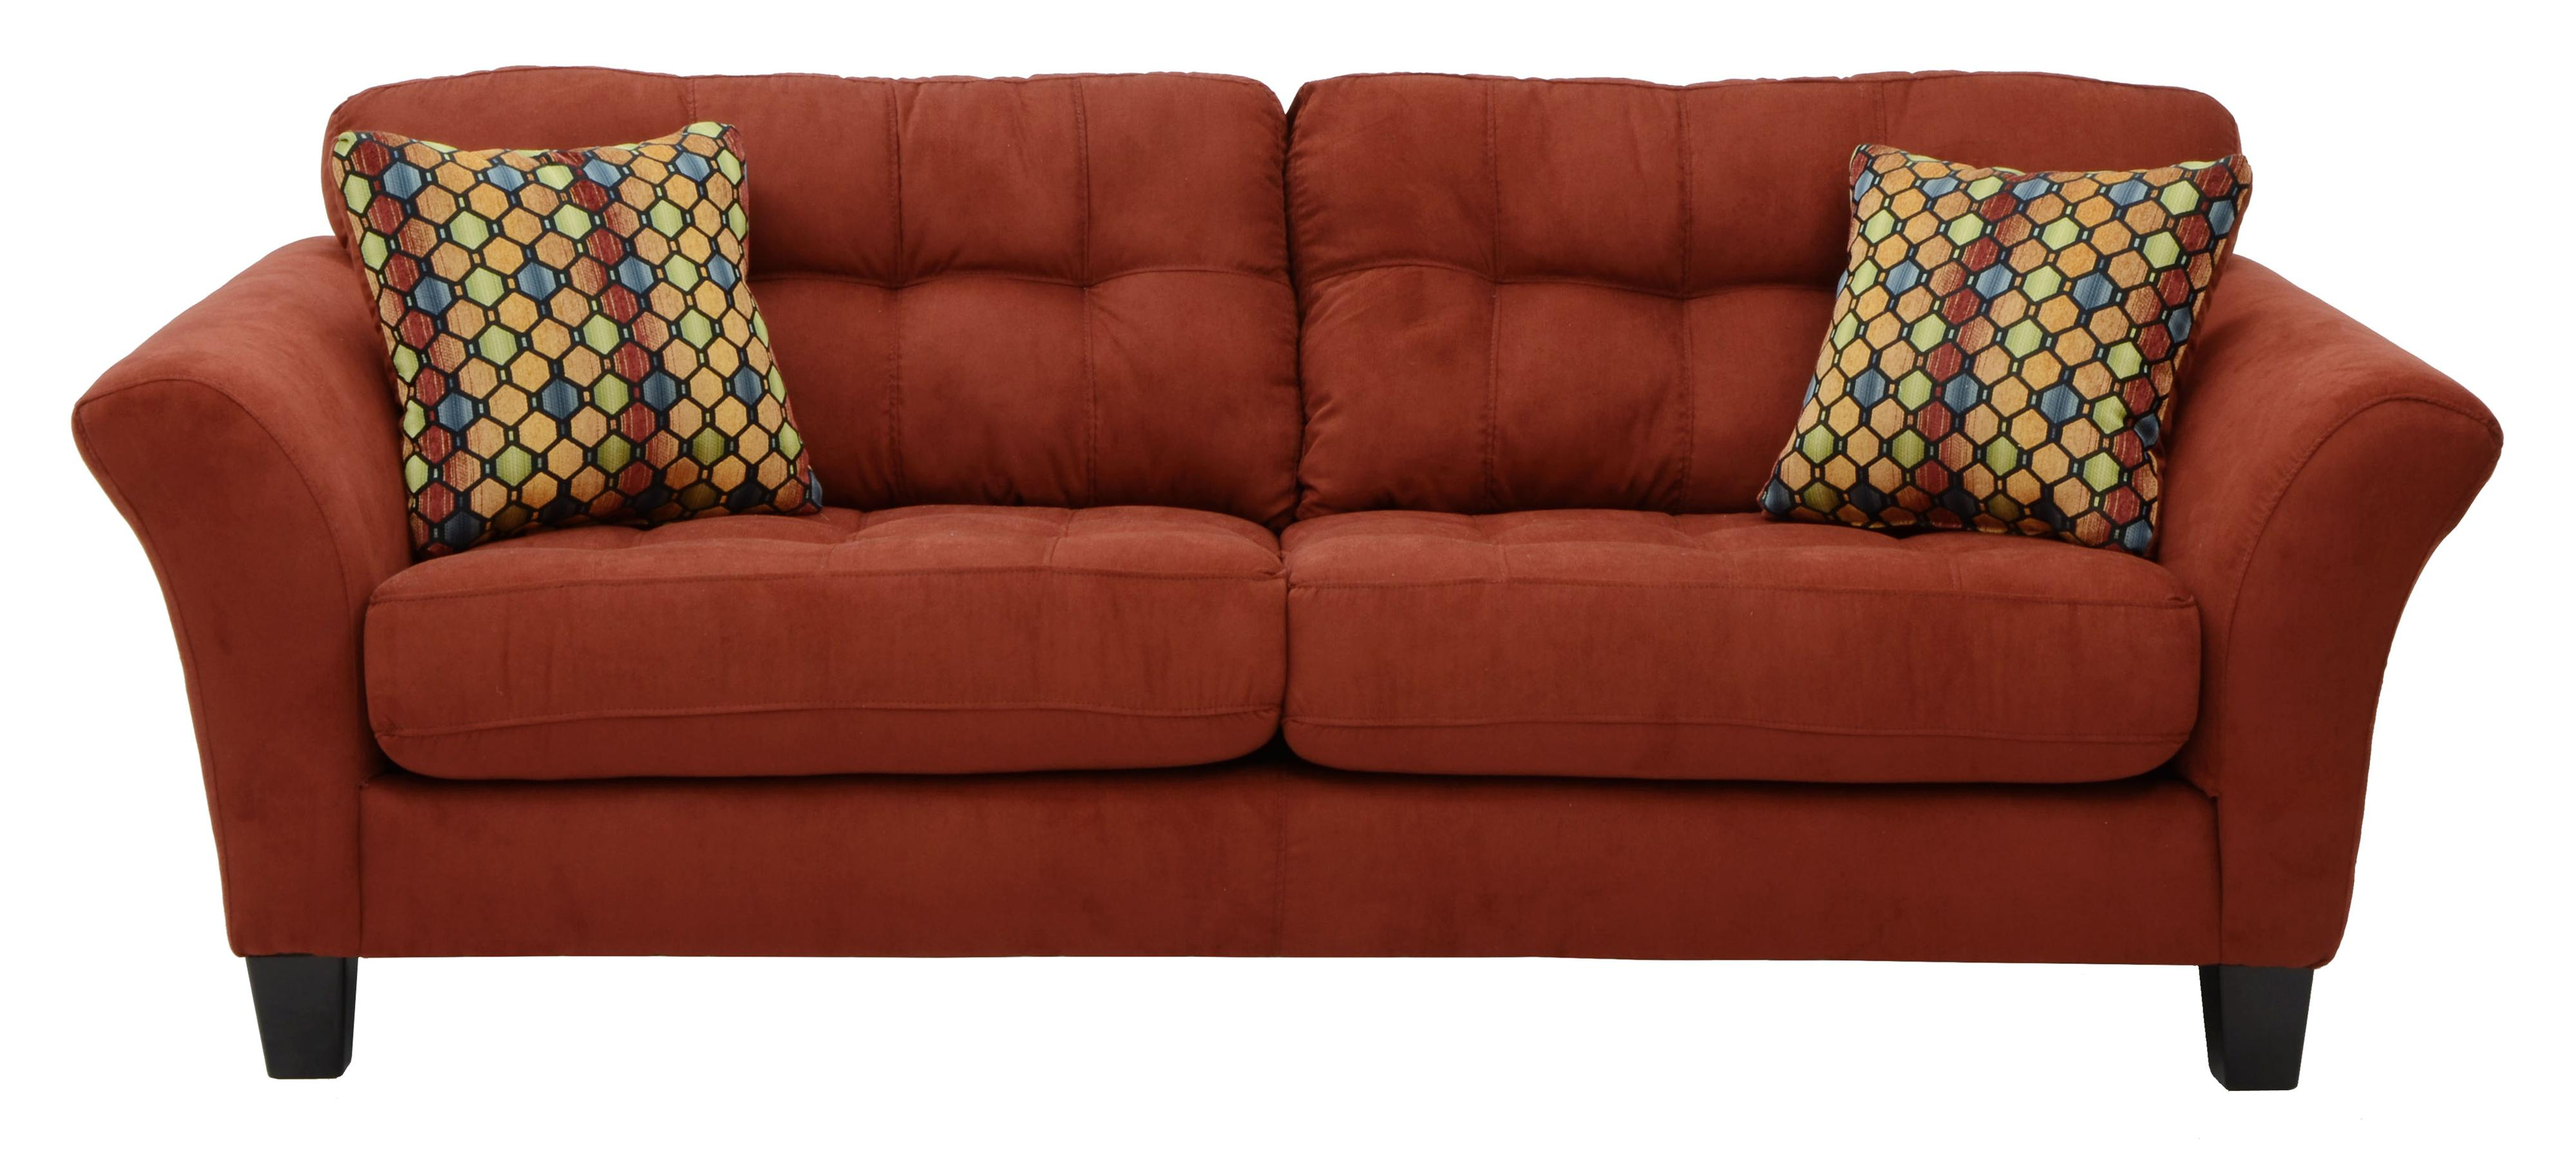 Sofa With 2 Seats And Tufted Back Cushions